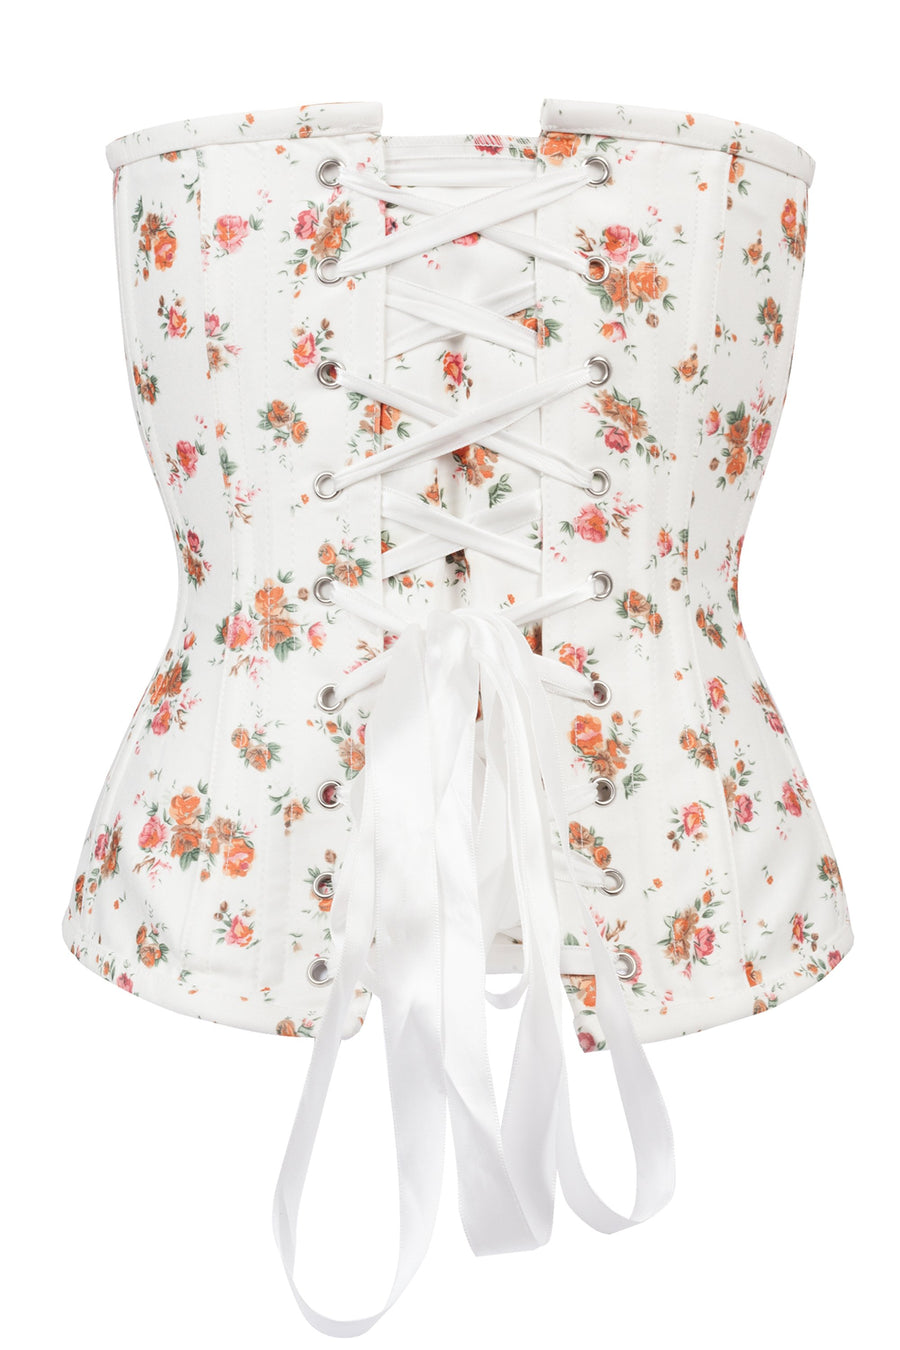 Floral Classic White Overbust With Sweetheart